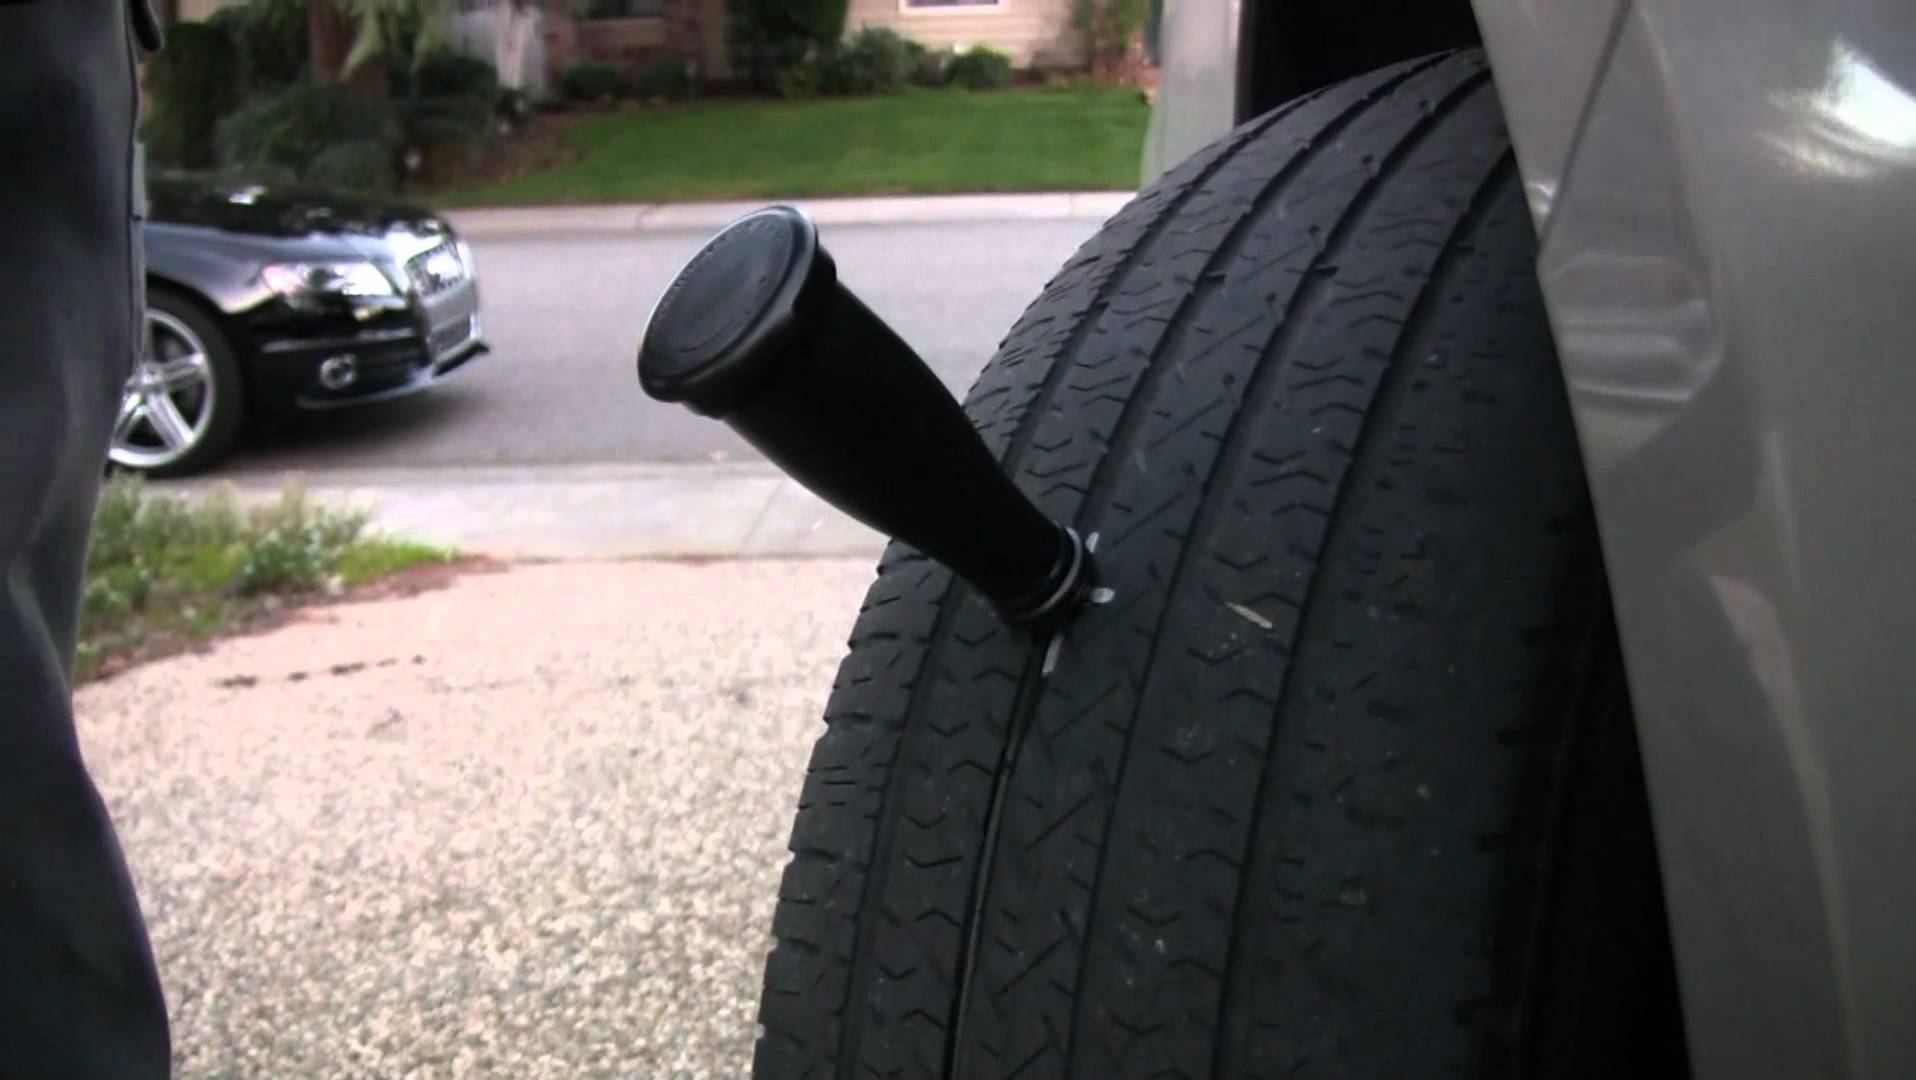 Dynaplug® Tire Repair - Adding a second plug to a puncture